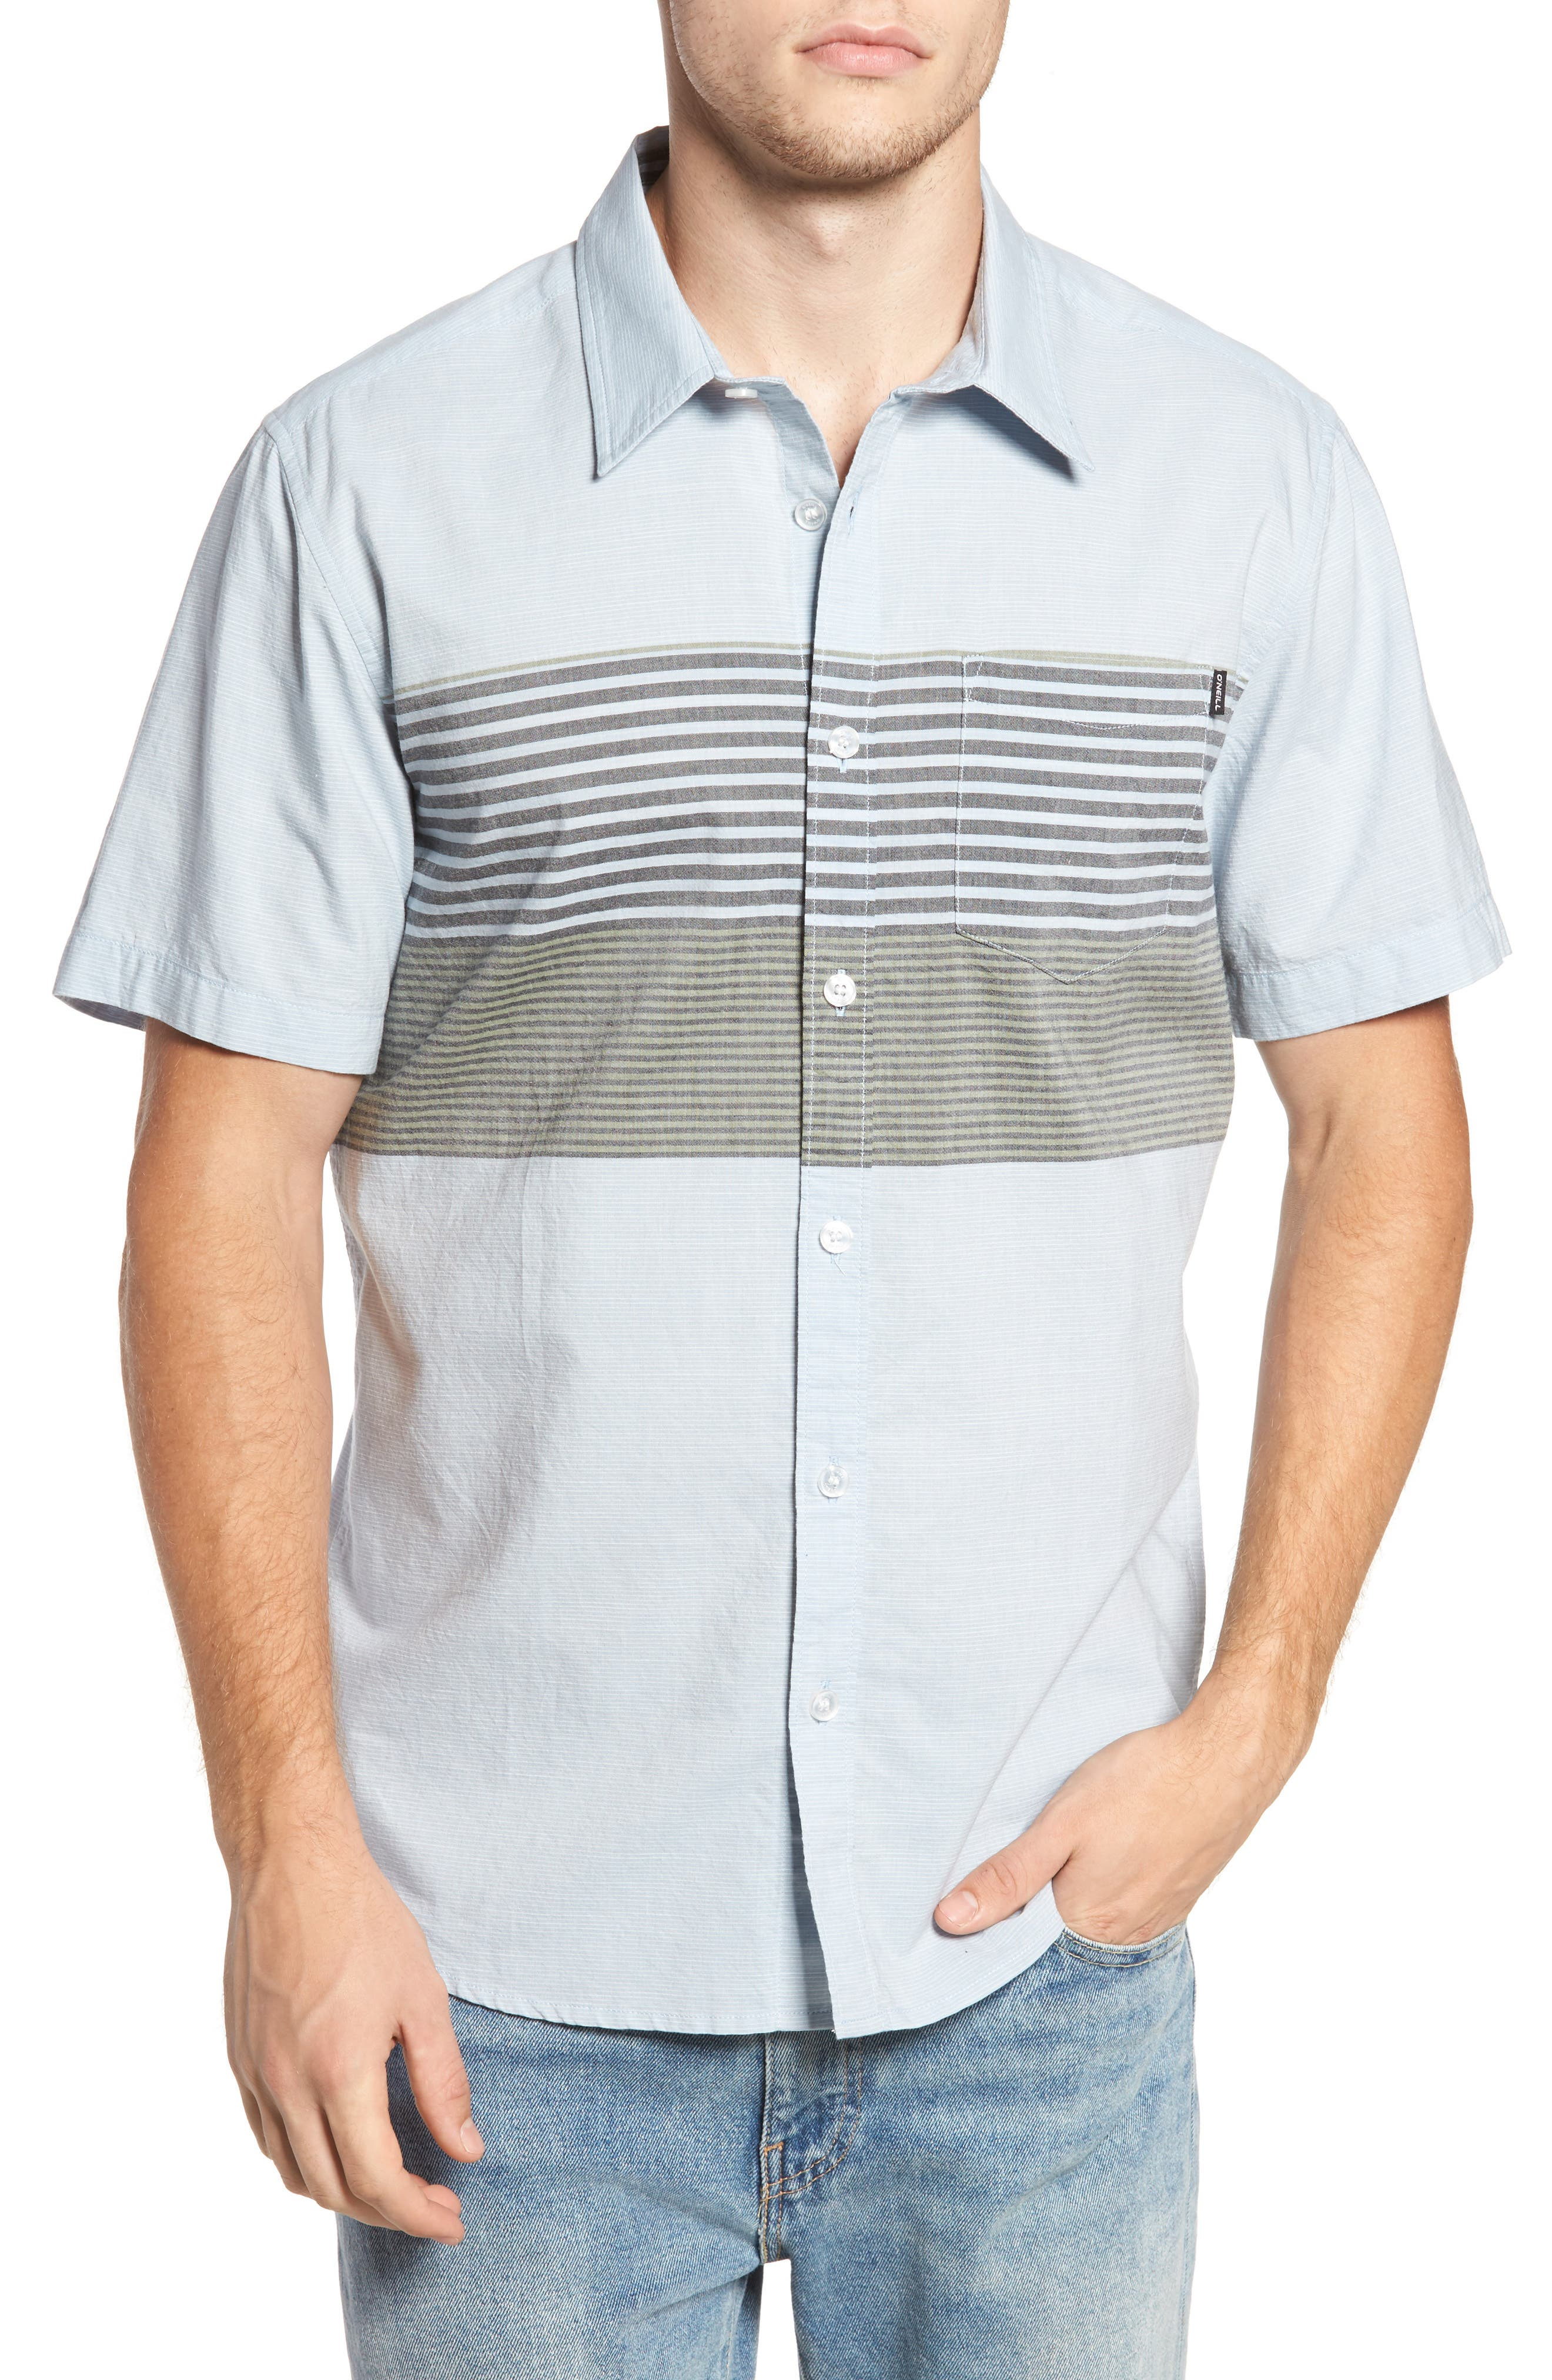 Altair Stripe Sport Shirt,                         Main,                         color, Light Blue